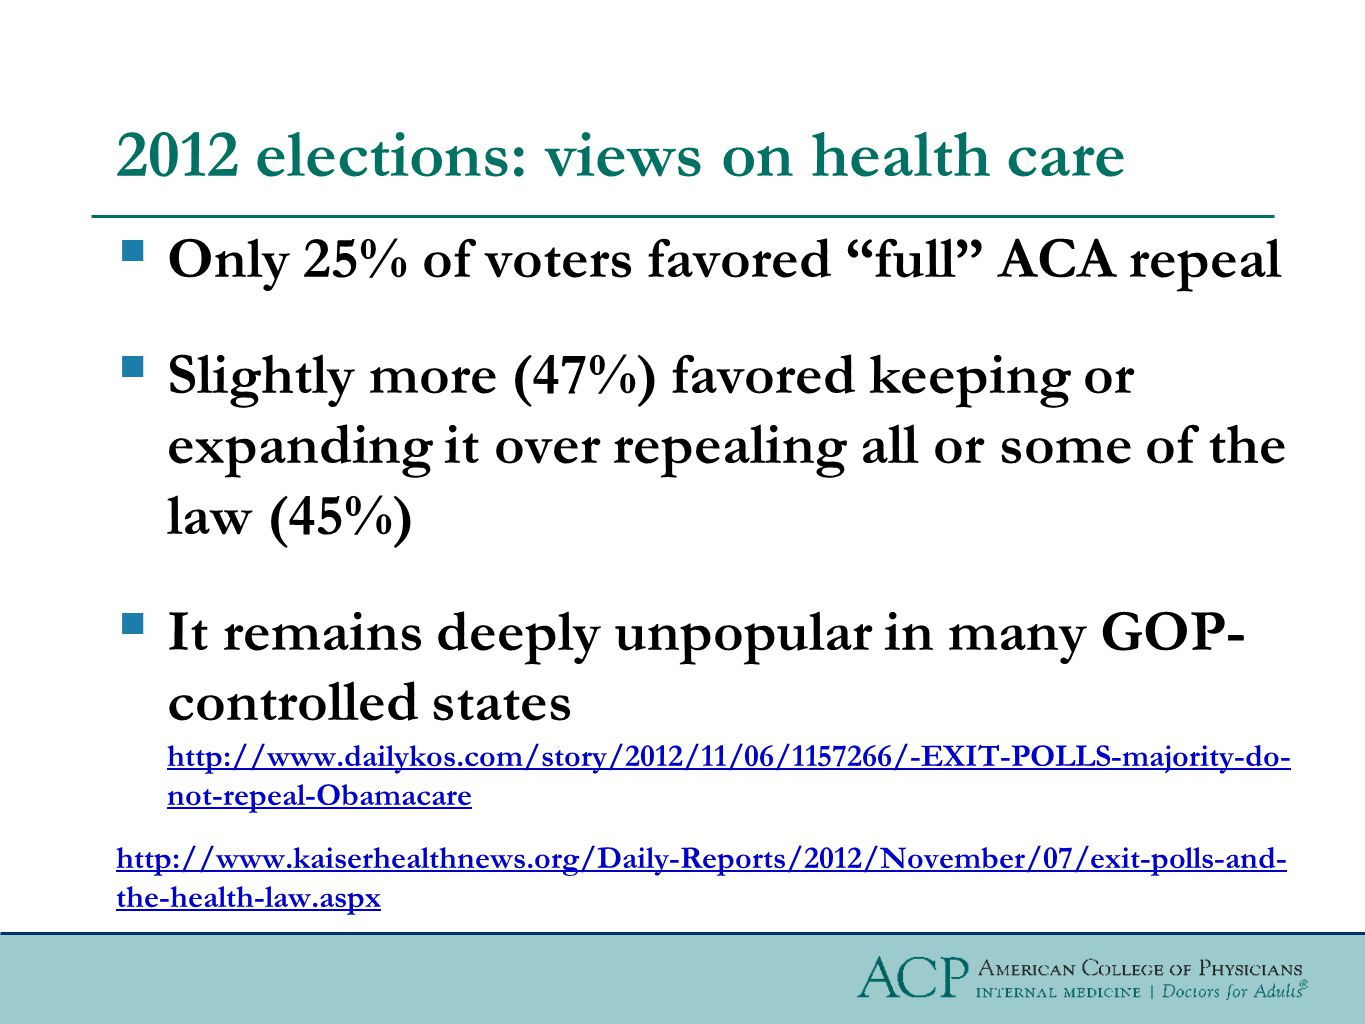 2012 elections: views on health care  Only 25% of voters favored full ACA repeal  Slightly more (47%) favored keeping or expanding it over repealing all or some of the law (45%)  It remains deeply unpopular in many GOP- controlled states http://www.dailykos.com/story/2012/11/06/1157266/-EXIT-POLLS-majority-do- not-repeal-Obamacare http://www.dailykos.com/story/2012/11/06/1157266/-EXIT-POLLS-majority-do- not-repeal-Obamacare http://www.kaiserhealthnews.org/Daily-Reports/2012/November/07/exit-polls-and- the-health-law.aspx